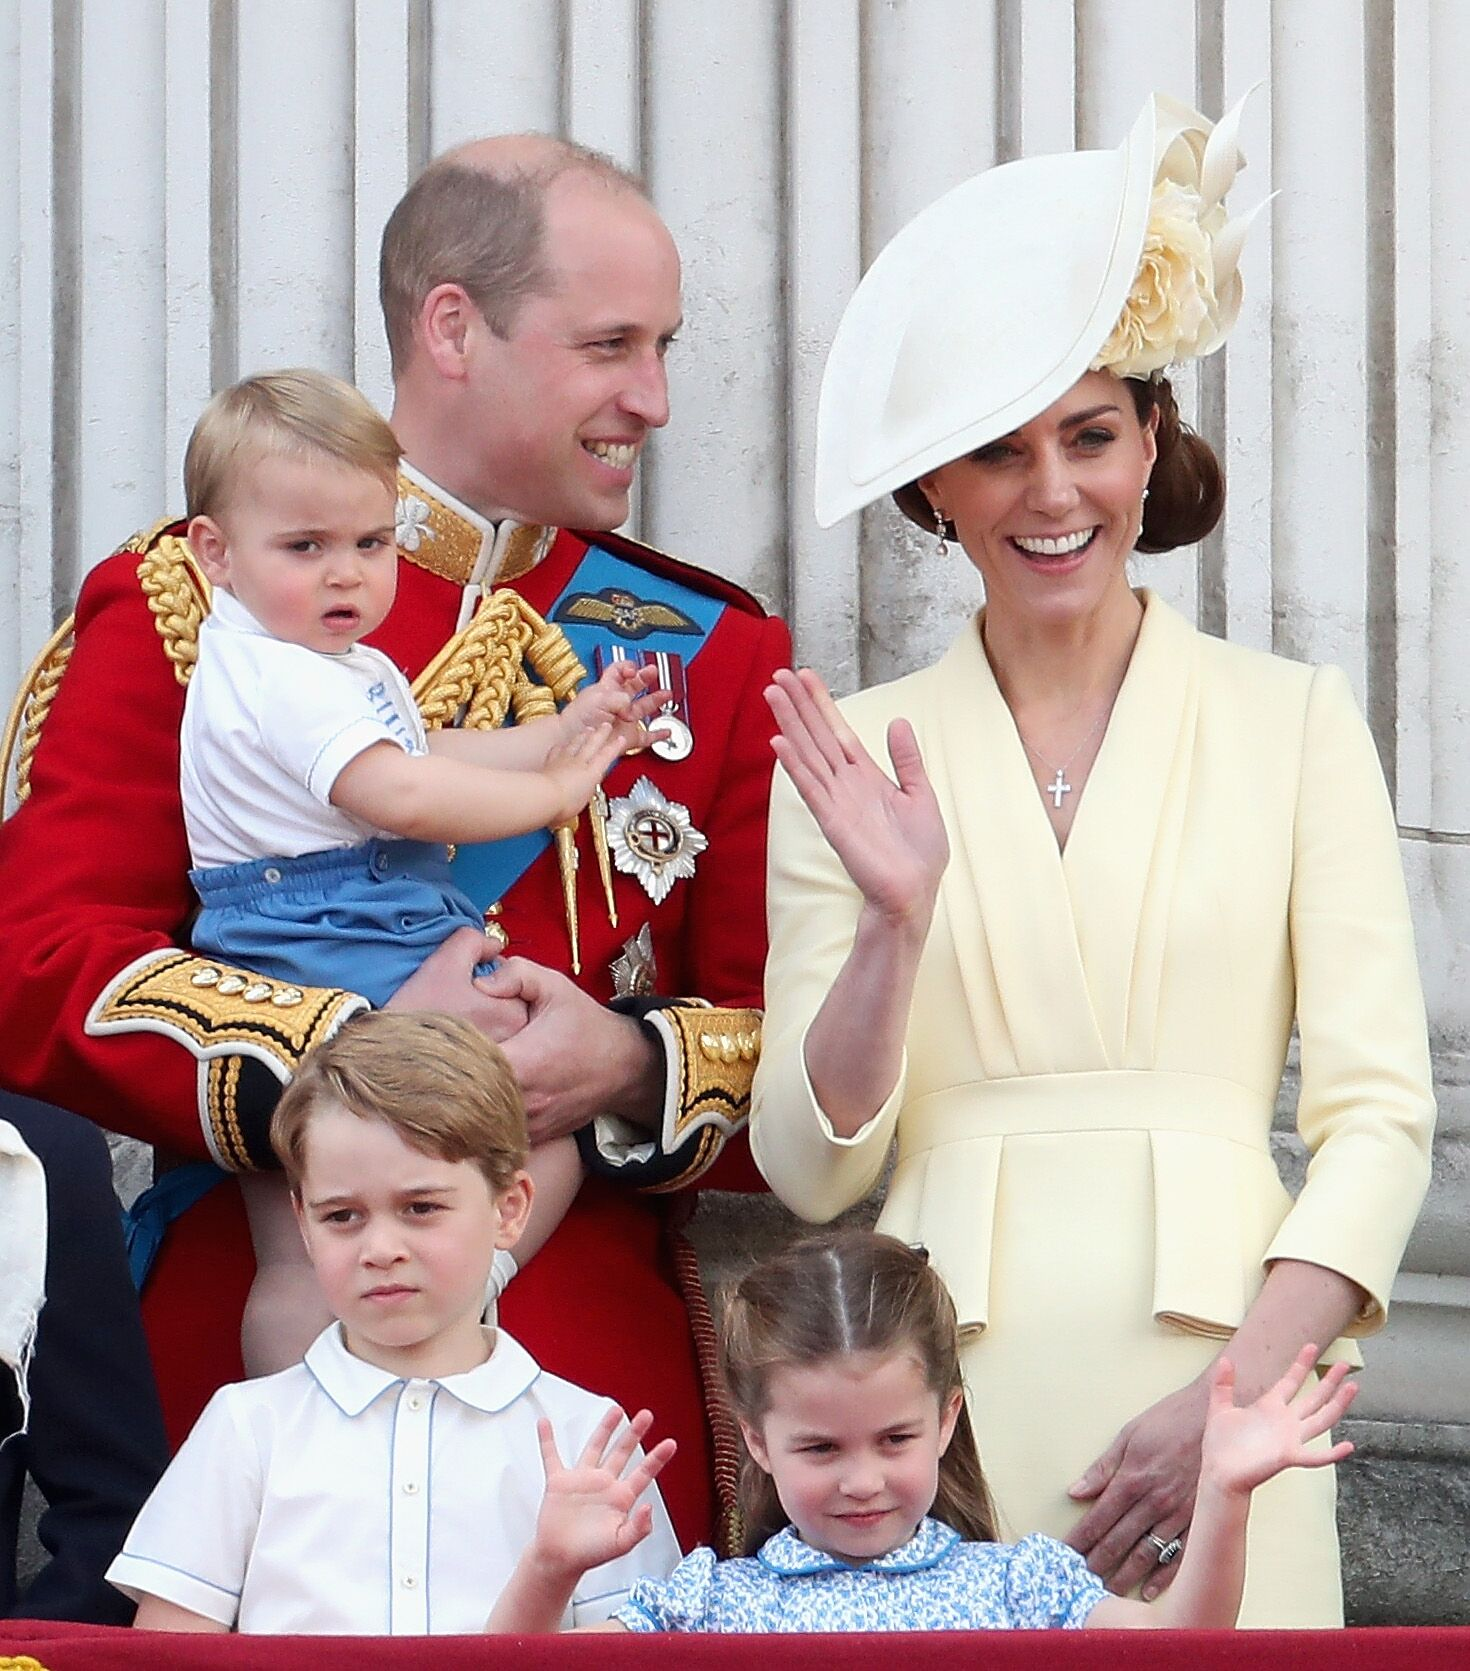 Prince William, Duke of Cambridge, Catherine, Duchess of Cambridge, Prince Louis of Cambridge, Prince George of Cambridge and Princess Charlotte of Cambridge during Trooping The Colour, the Queen's annual birthday parade, in London, England | Photo: Getty Images